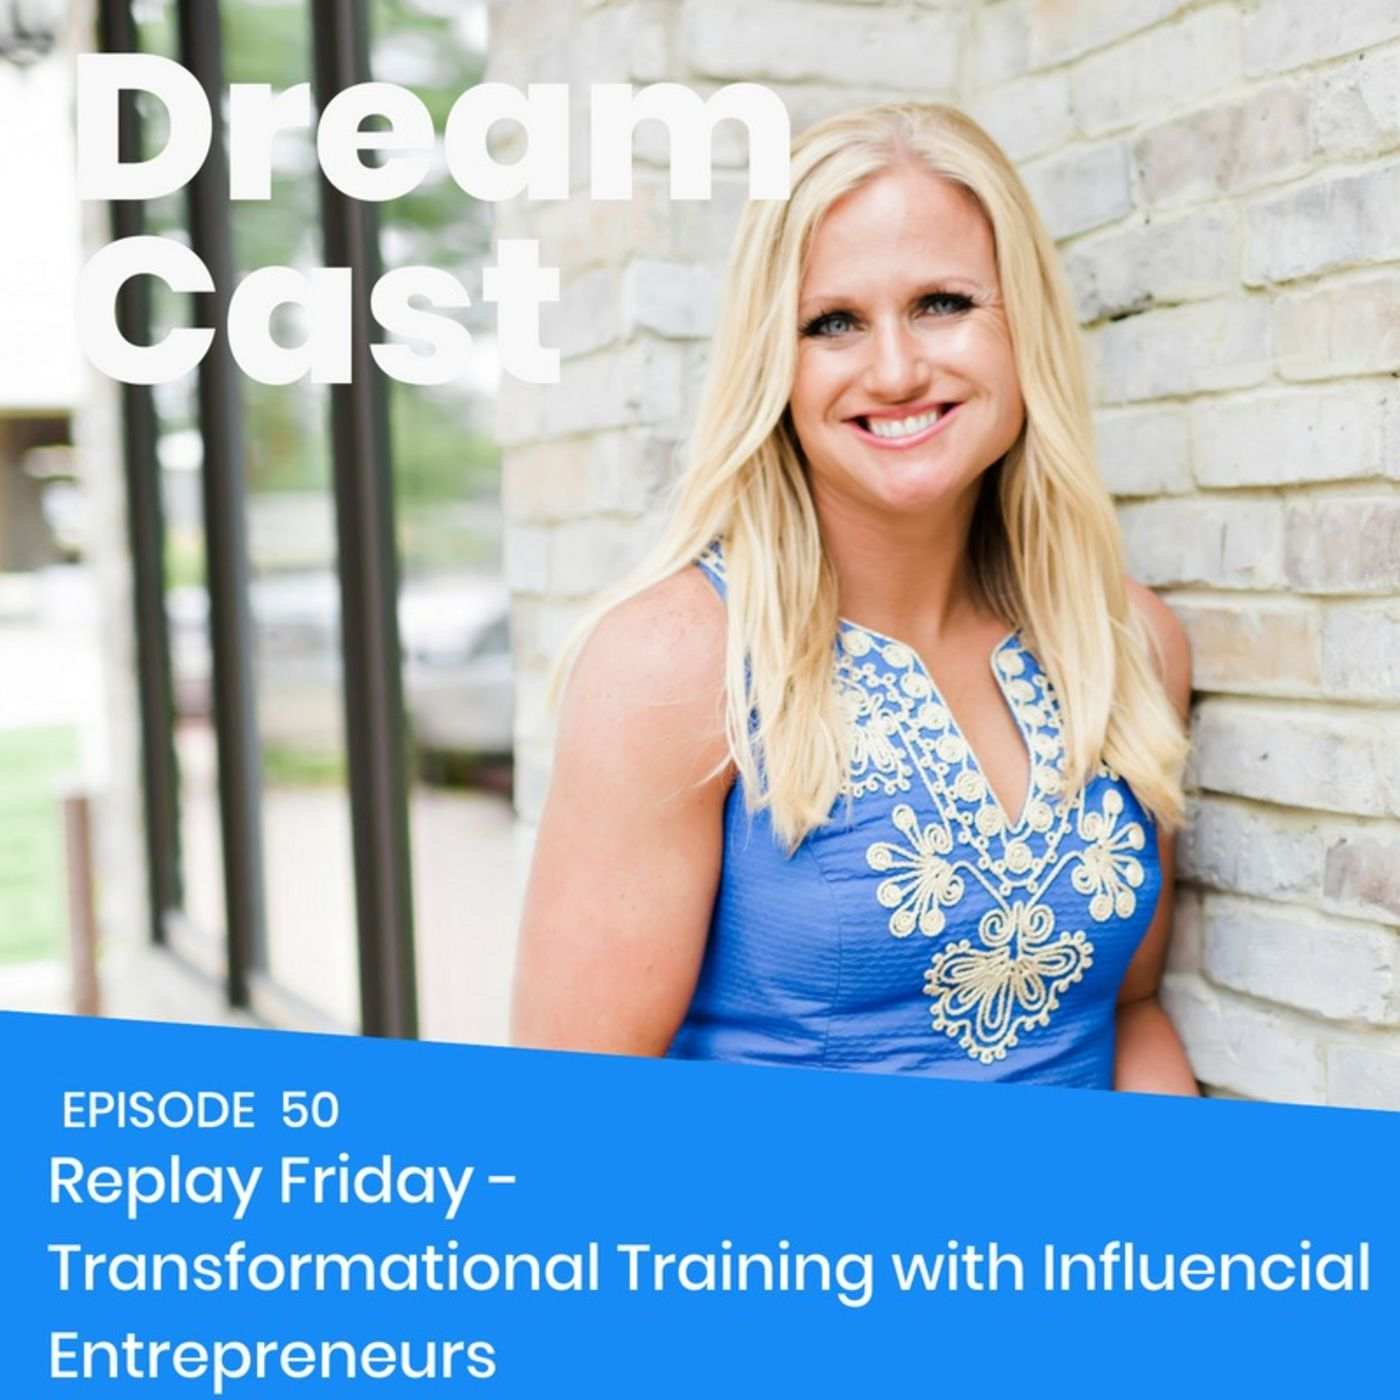 Episode 50 - Replay Friday - Transformational Training with Denise Walsh on Influencial Entrepreneuers